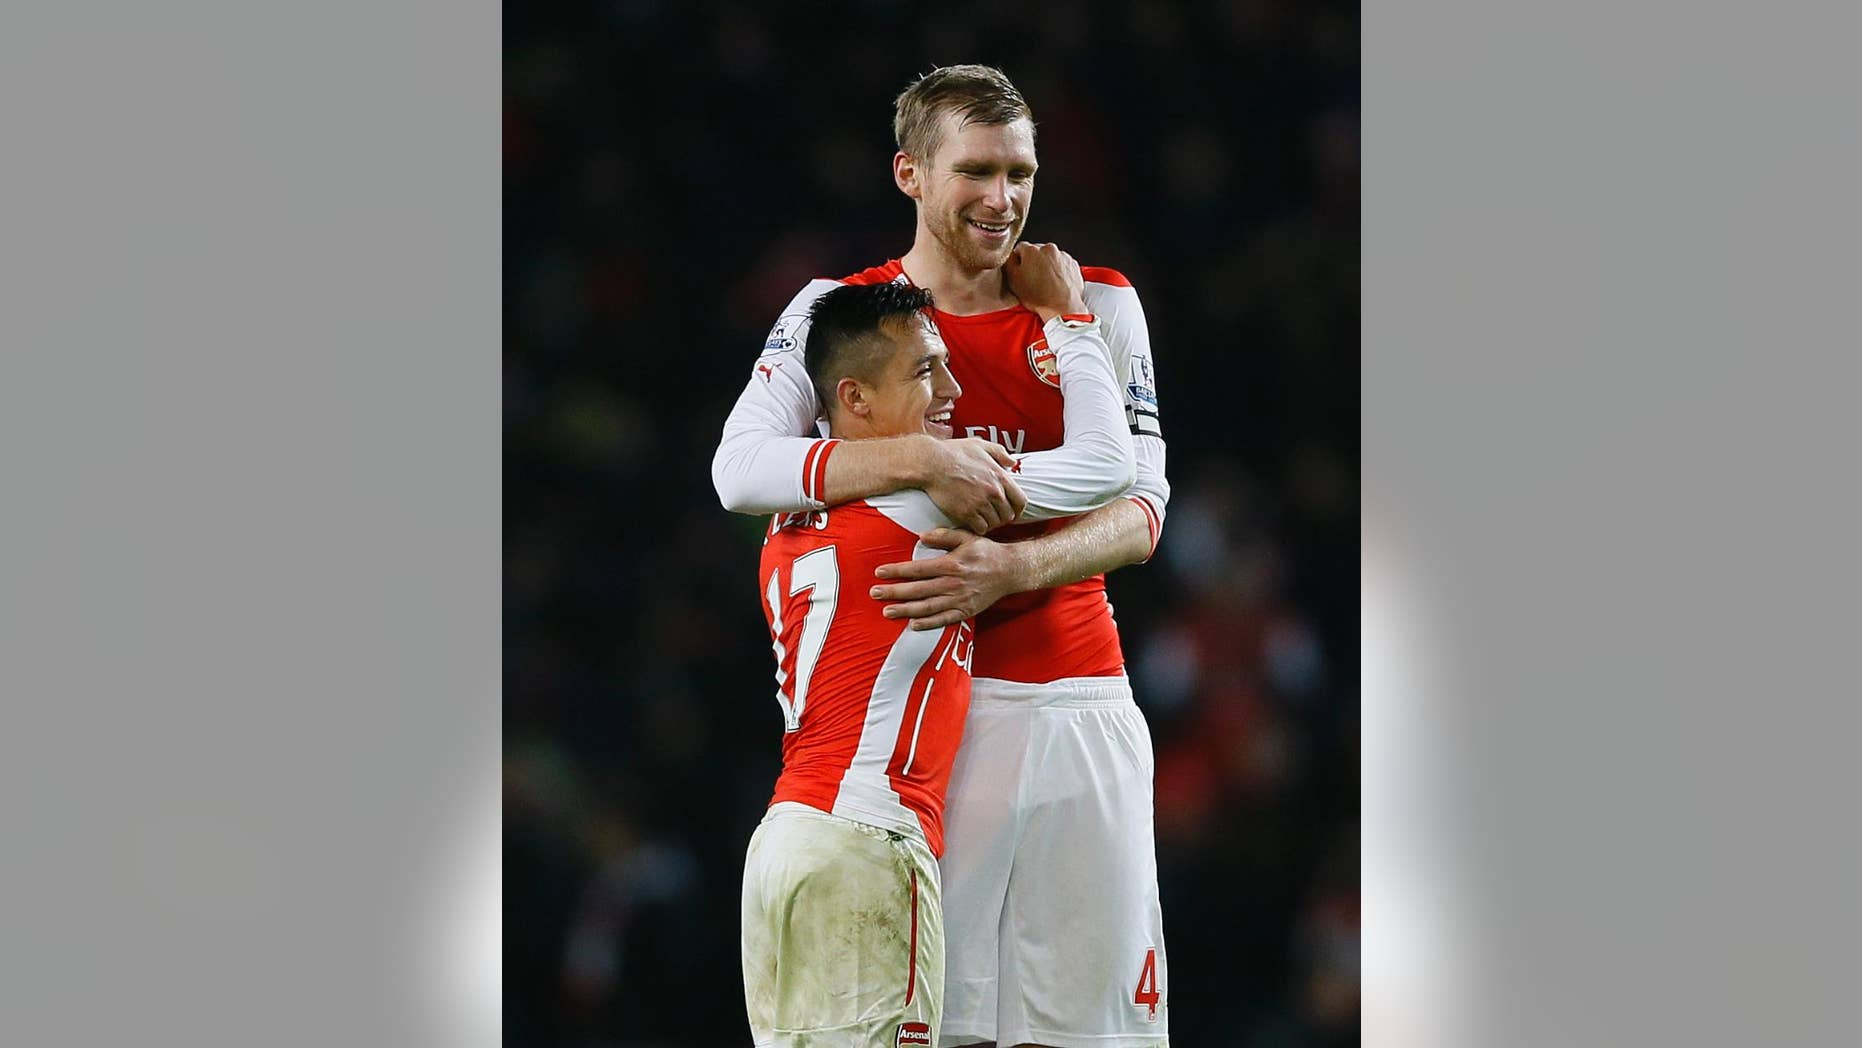 Arsenal's captain Per Mertesacker, right, celebrates with goal scorer Alexis Sanchez  at the end the English Premier League soccer match between Arsenal and Southampton at Emirates stadium in London, Wednesday, Dec. 3, 2014. (AP Photo/Kirsty Wigglesworth)